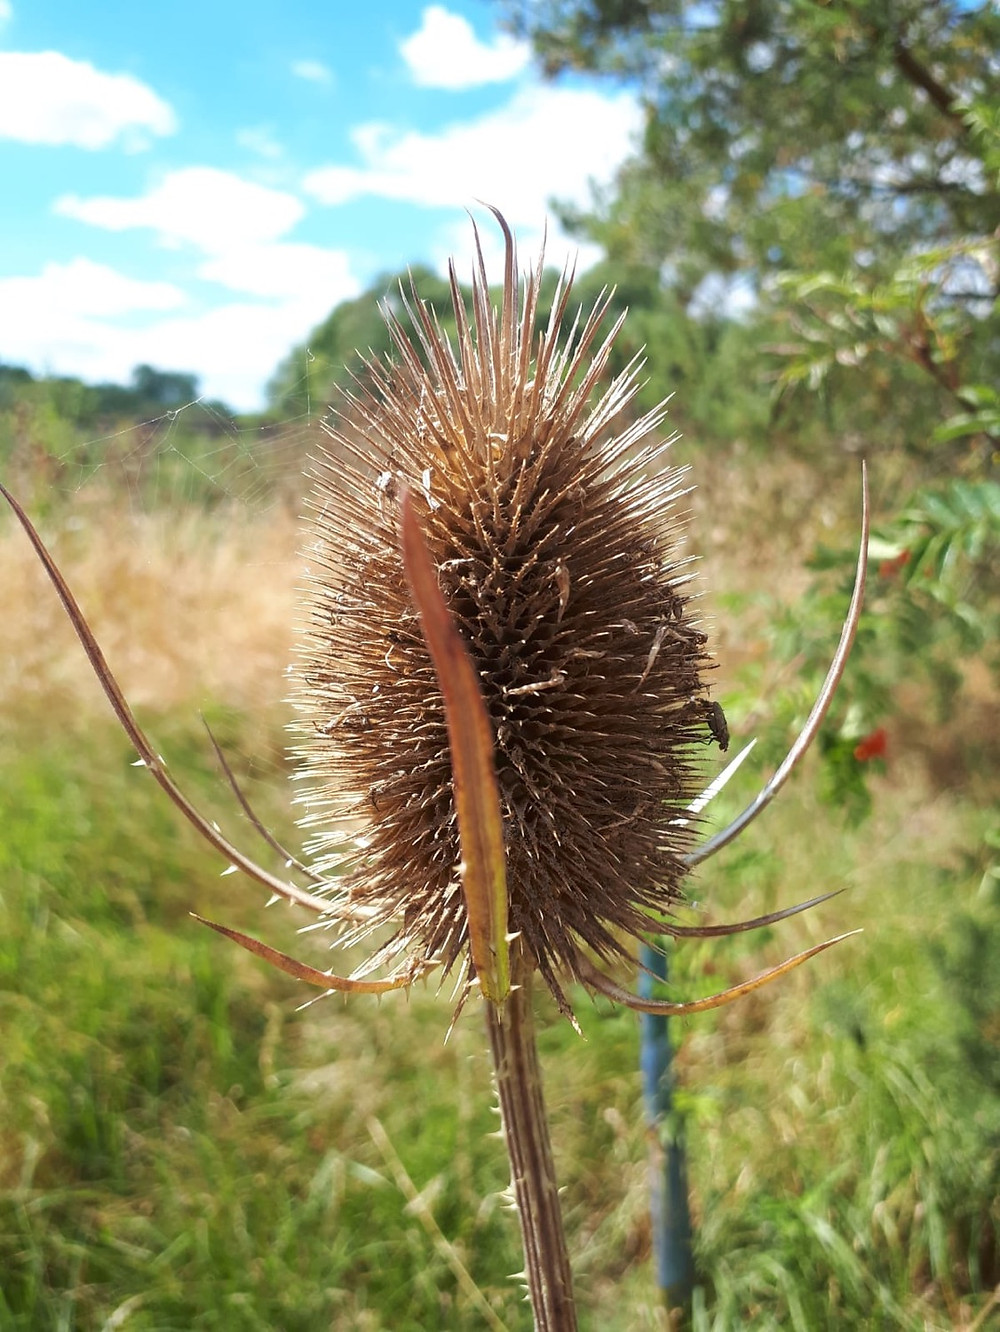 The prickly beauty of Teasel (Dipsacus fullonum) Seedheads LN